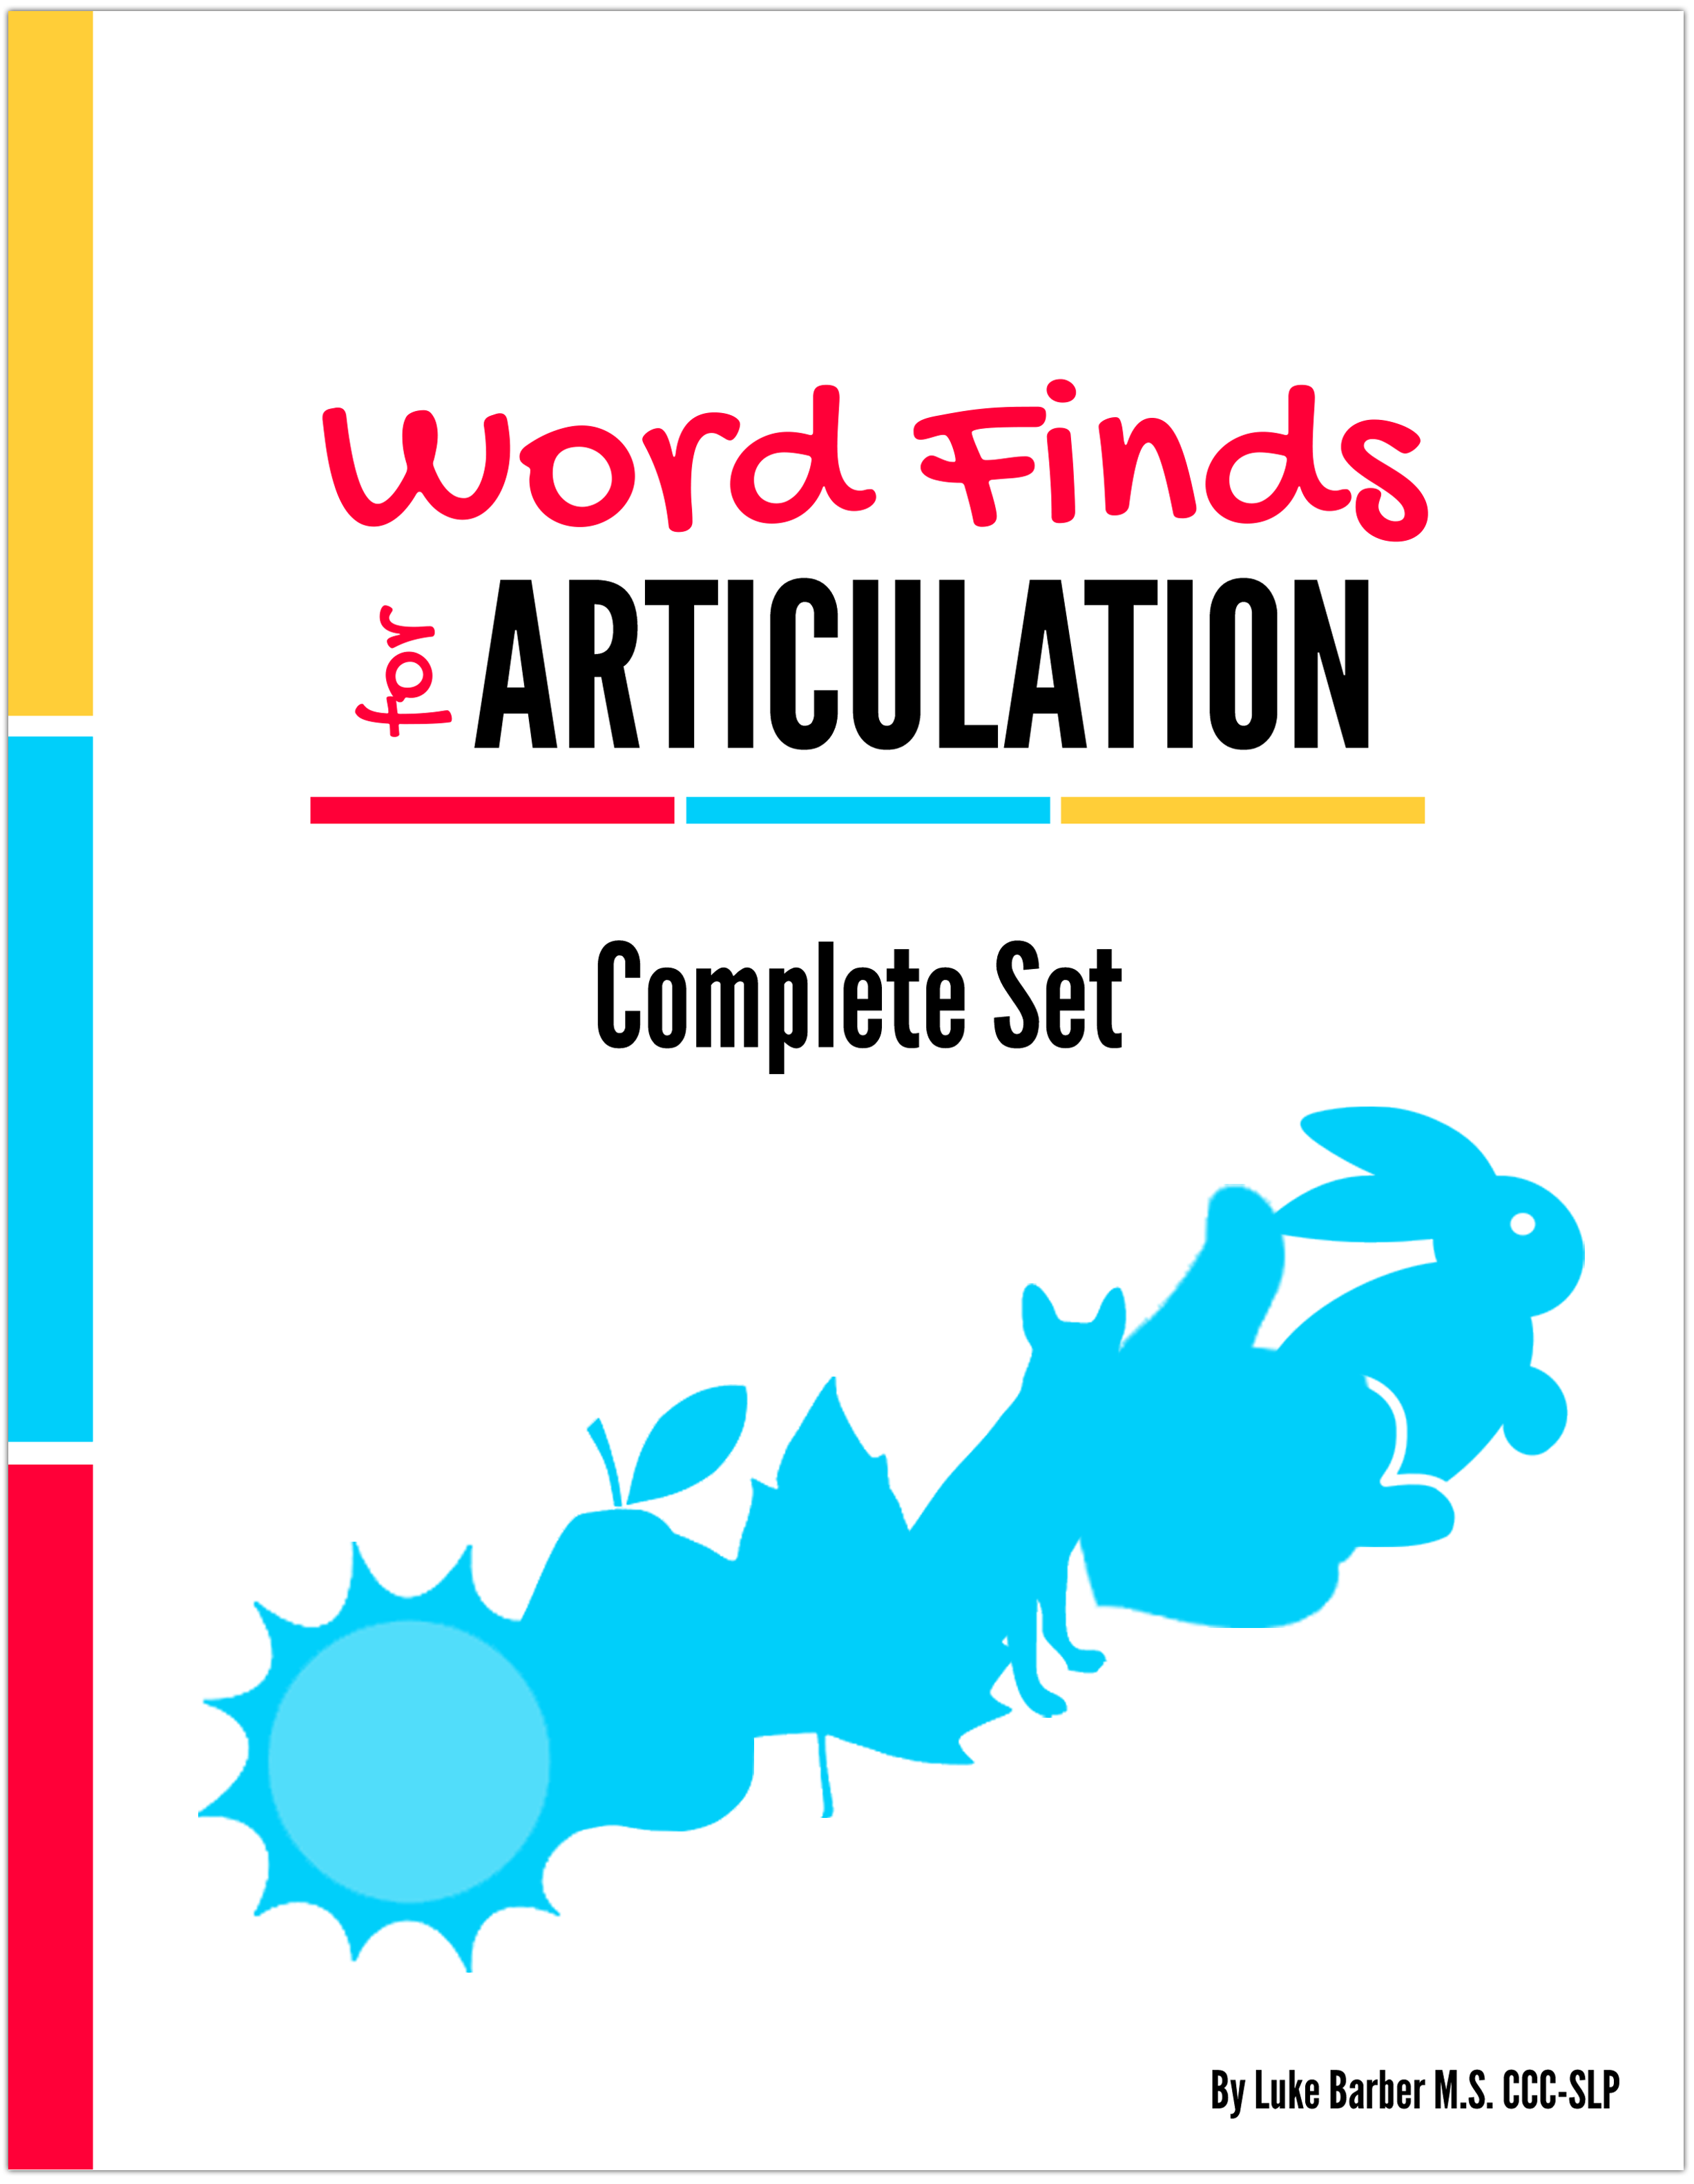 speech 300 words Find speech on adult education for students and others find long and short adult education speech in very simple and easy words.